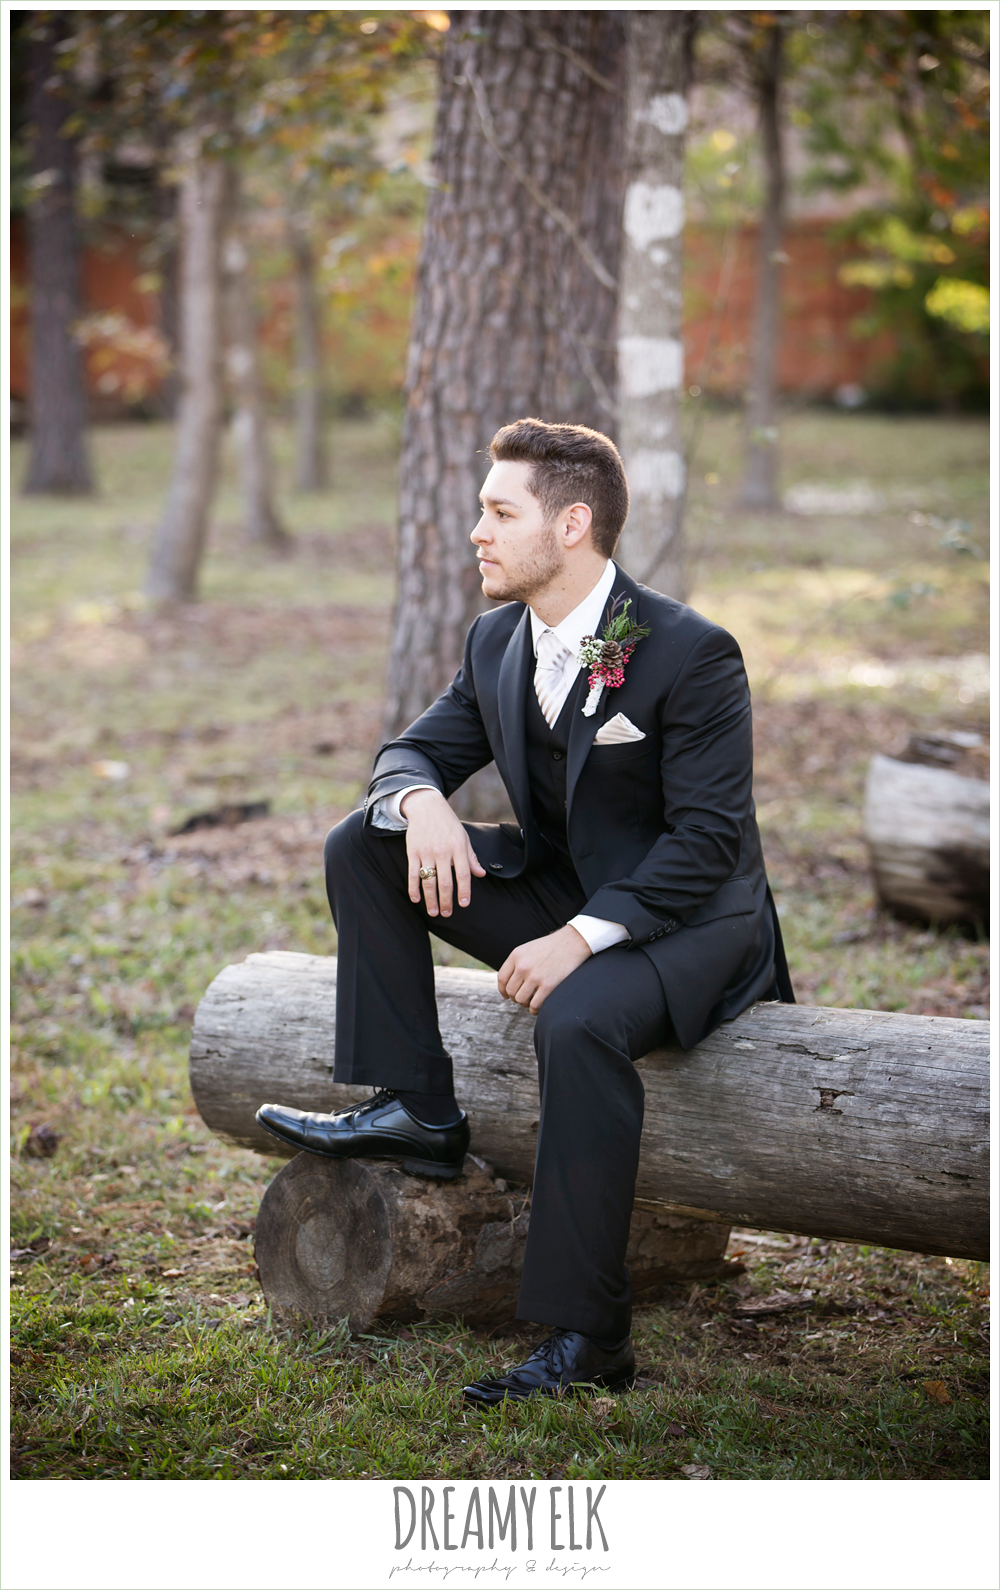 groom in tux, winter december church wedding photo {dreamy elk photography and design}